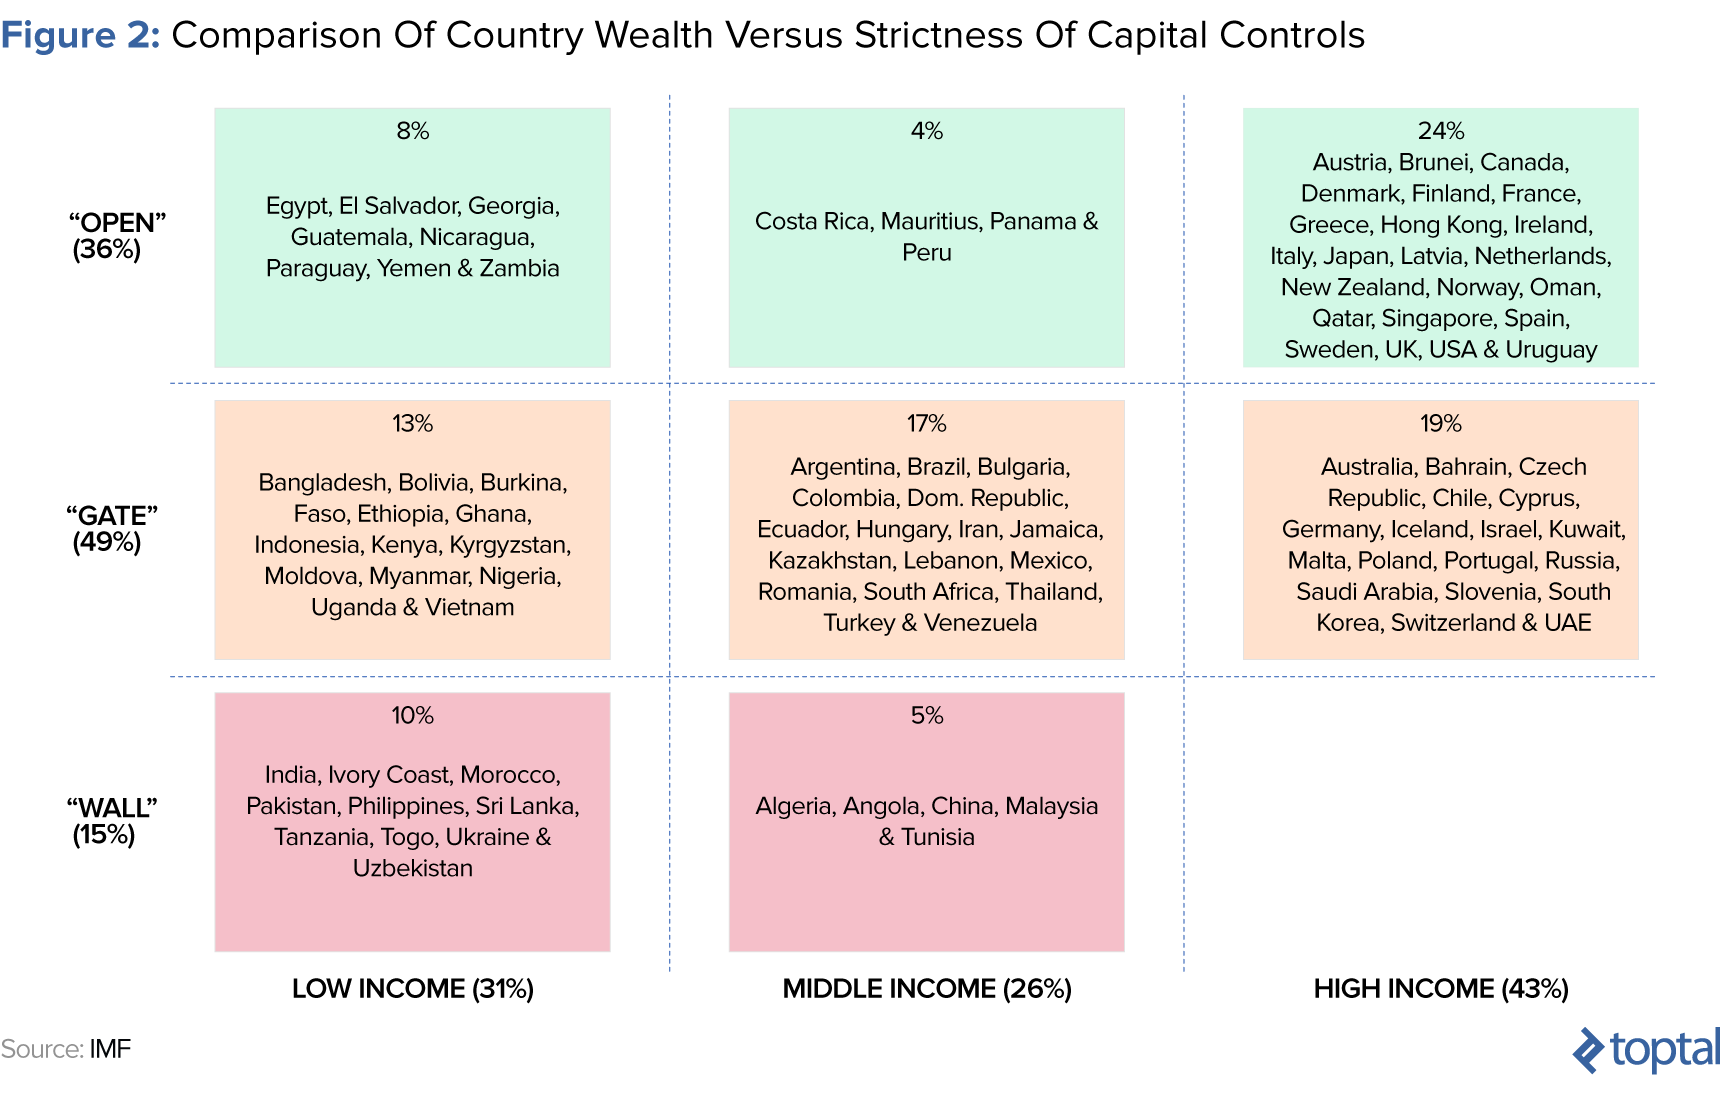 how do capital controls correspond to economic wealth